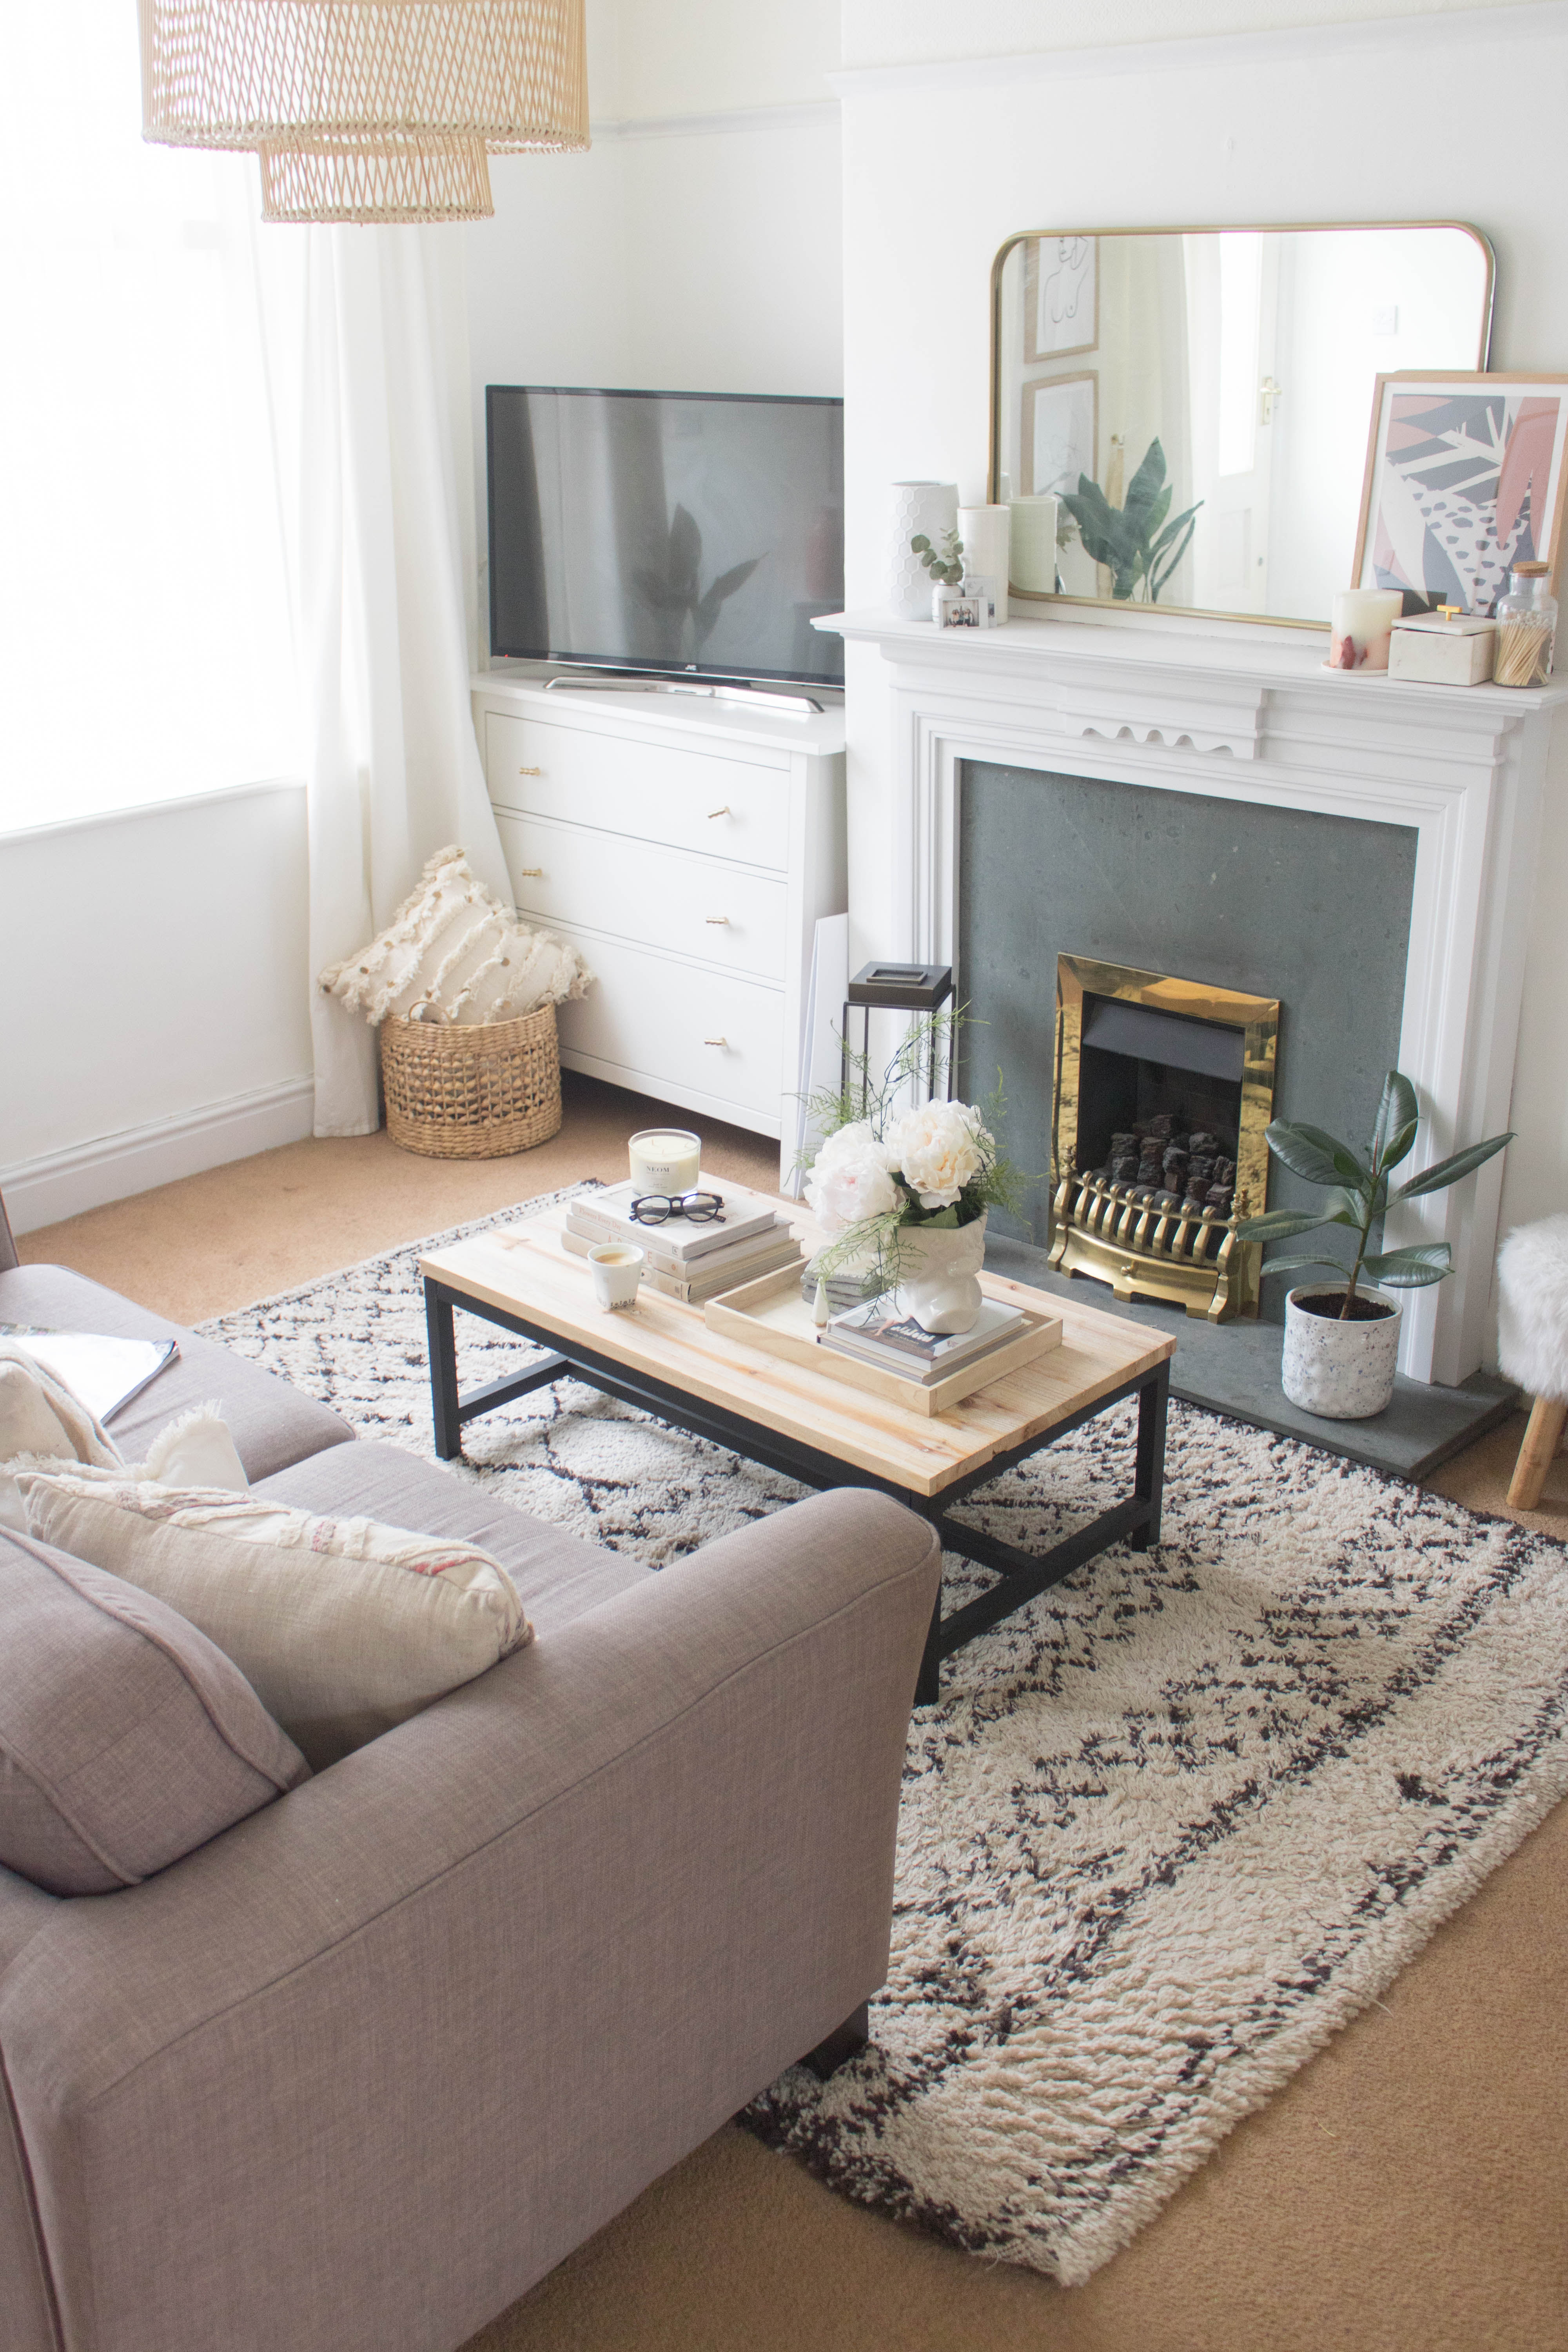 5 Ways to Make Your Small Living Room Feel Bigger